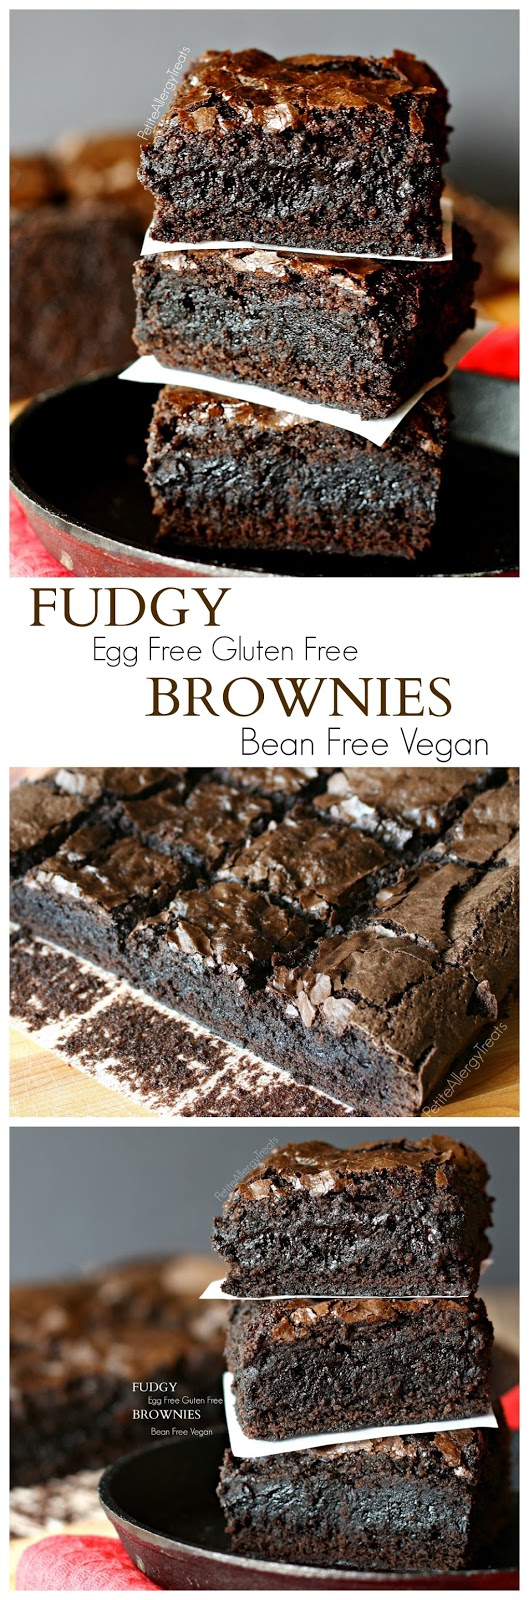 Fudgy Gluten Free Brownies (Egg Free) | Red White Apron